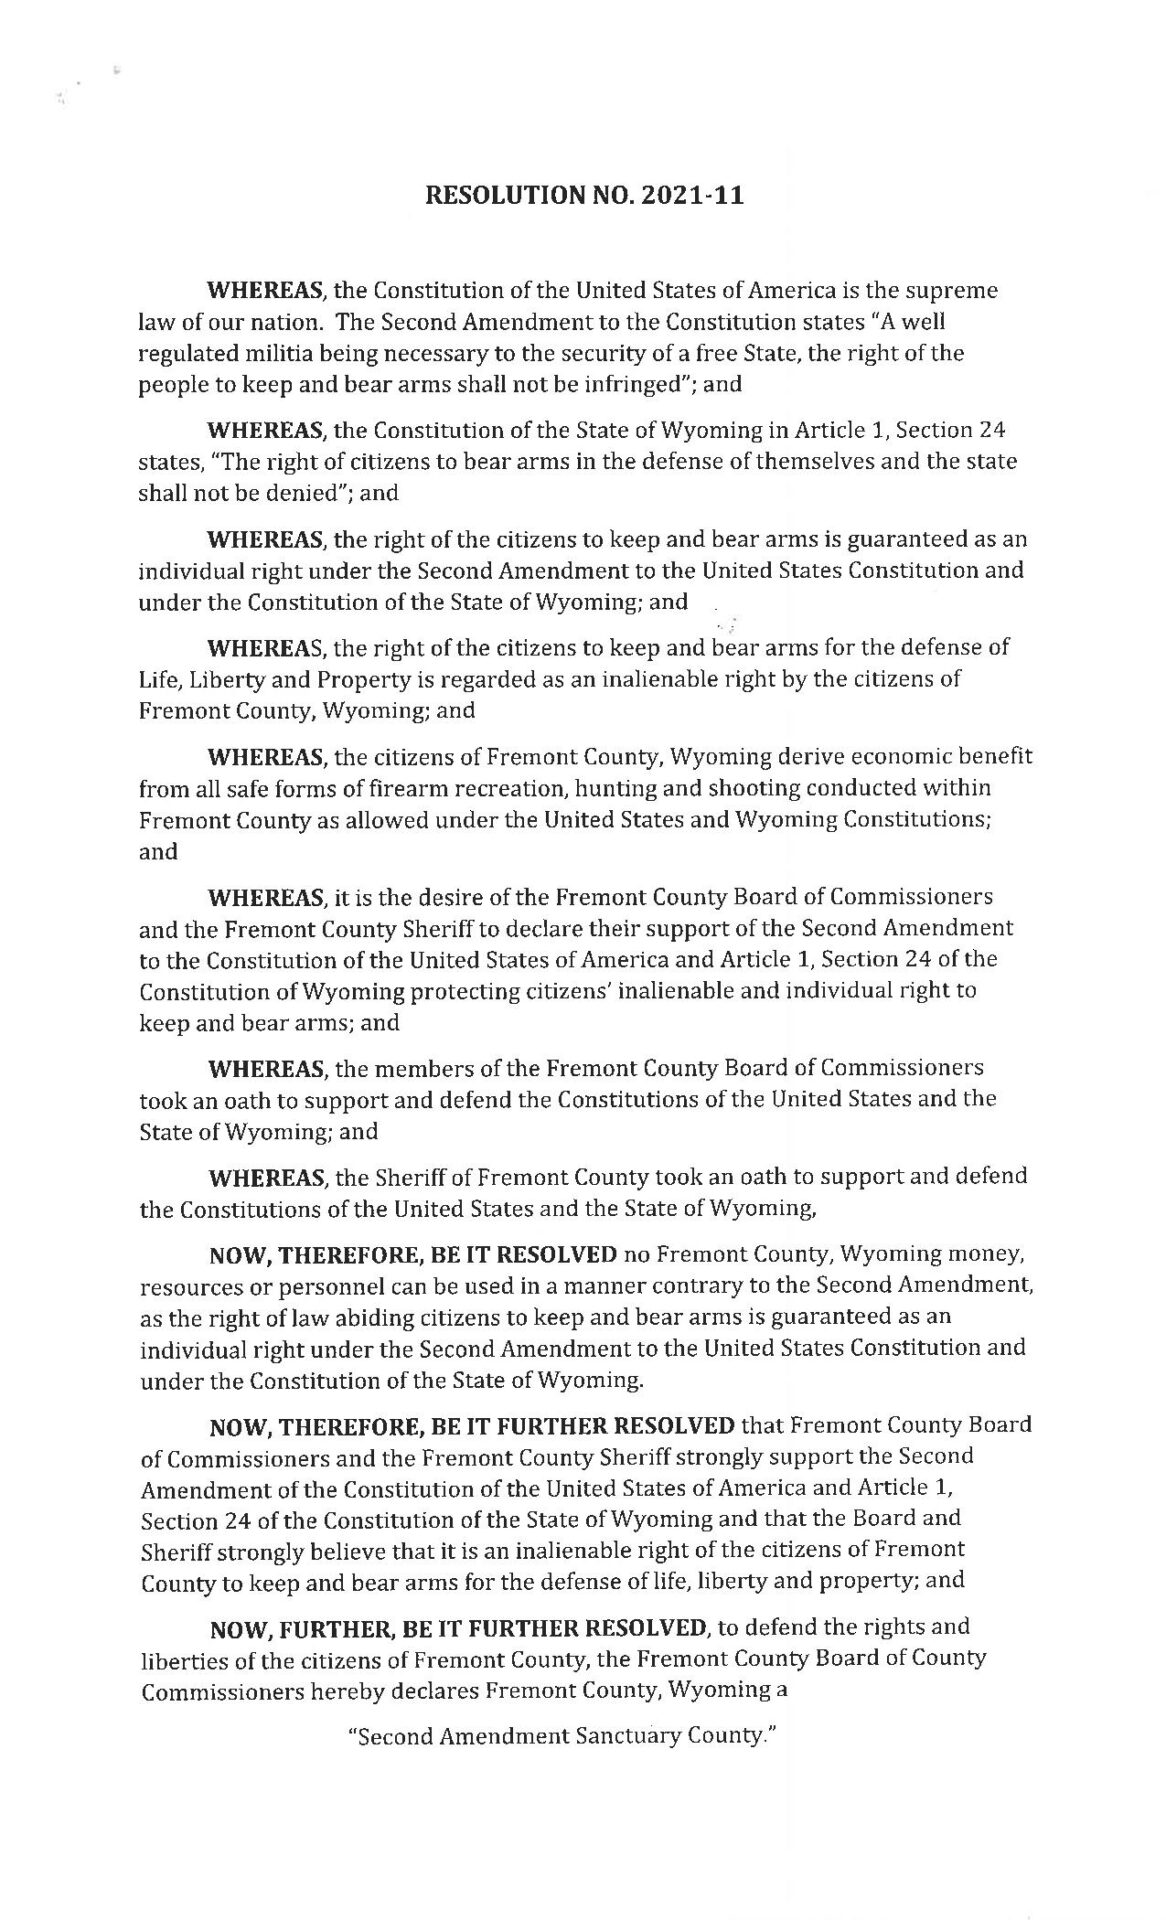 RES-2021-11 Second Amendment Sanctuary Fremont Wyoming page 1